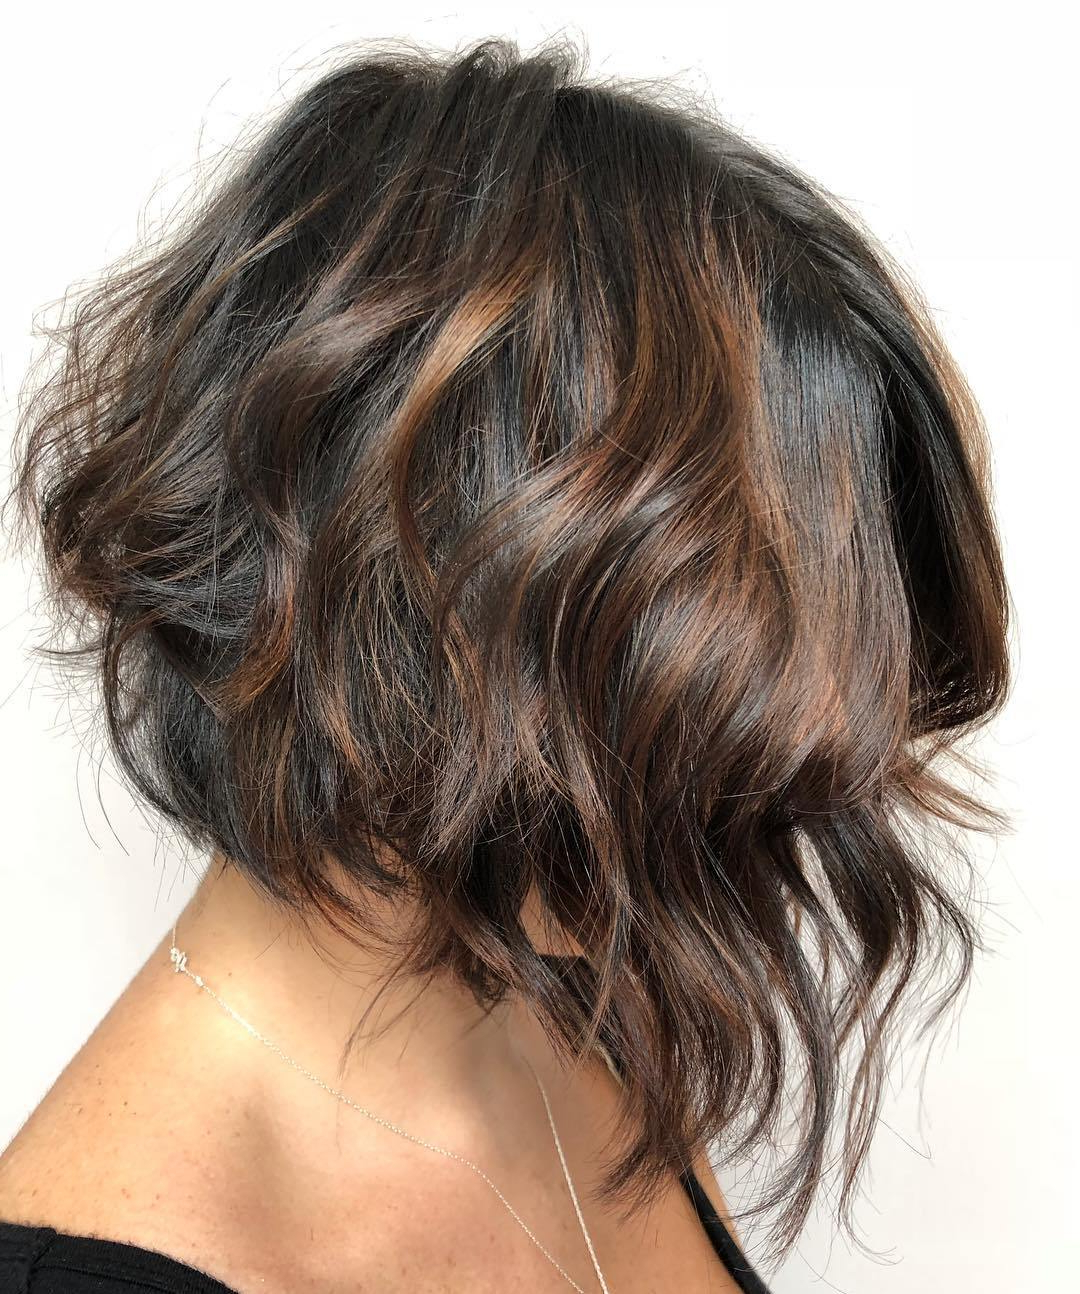 40 Short Hairstyles For Thick Hair (trendy In 2019 2020 Regarding Golden Bronde Bob Hairstyles With Piecey Layers (View 12 of 20)